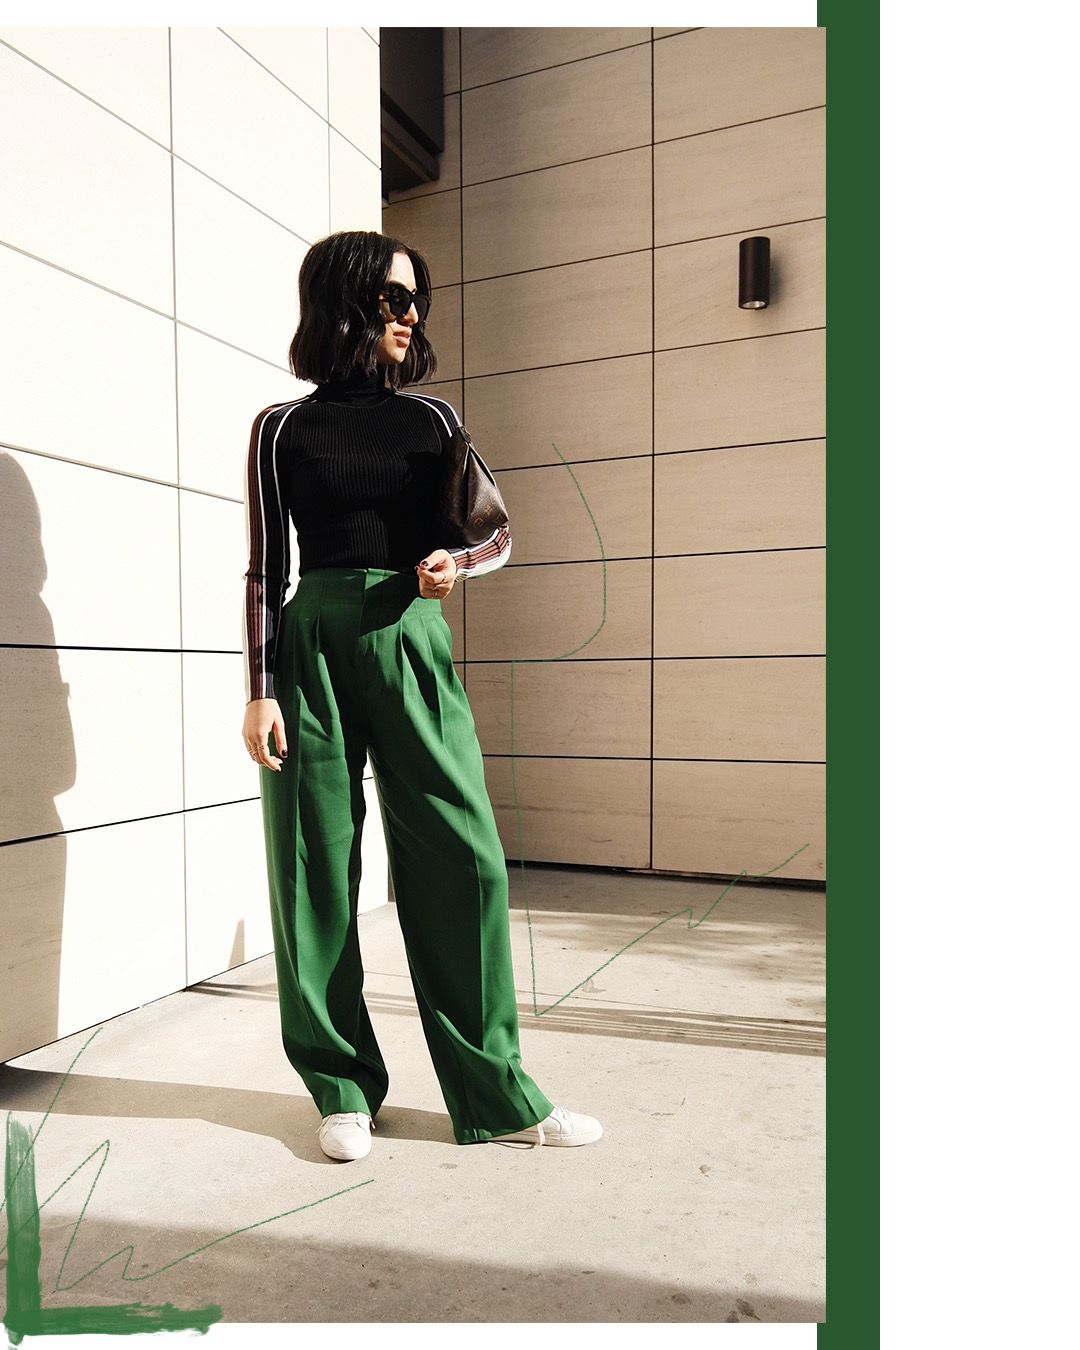 LA Blogger Tania Sarin featuring new upcoming brands starting with PH5 and their ribbed turtleneck paired with green H&M pants with edited photography made in LA.